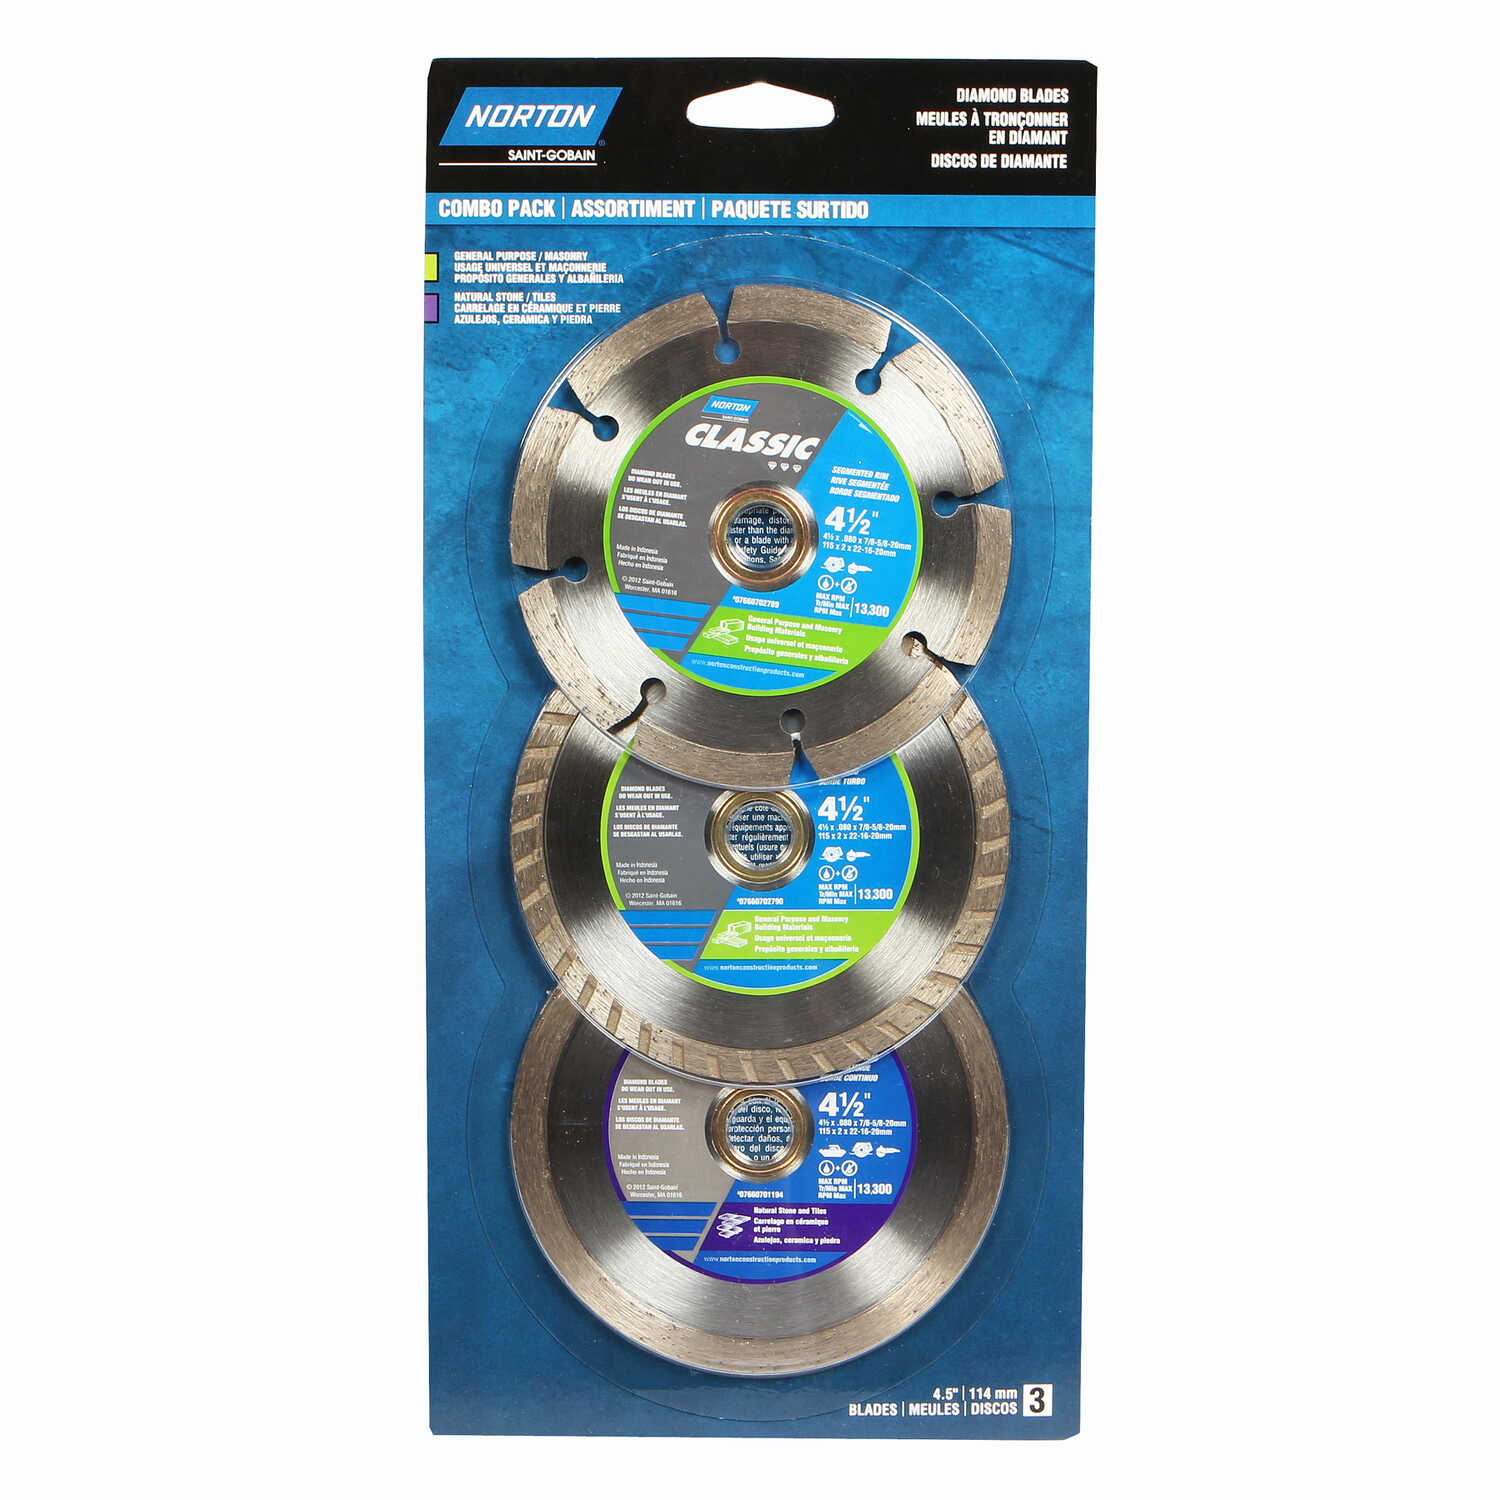 Norton  Classic  4-1/2  Diamond  Saw Blade Combo Pack  0.08 in.  5/8 and 7/8 in.  3 pk